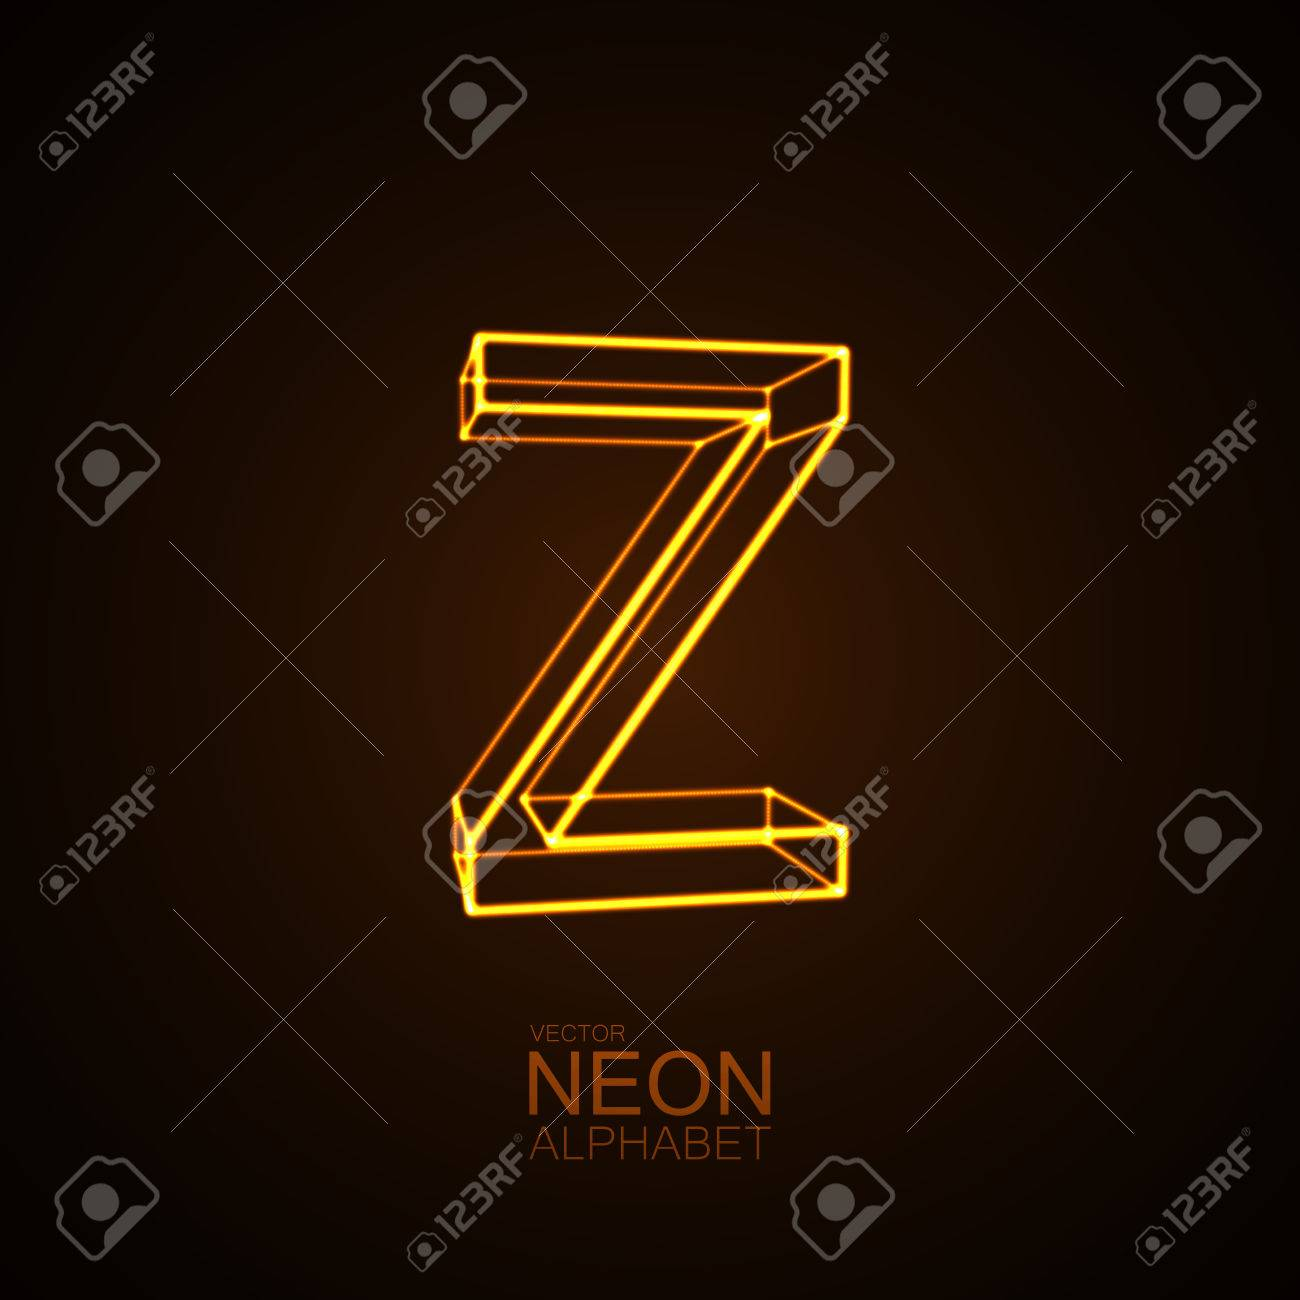 Neon 3d letter z typographic vector element for design part neon 3d letter z typographic vector element for design part of glow neon alphabet buycottarizona Choice Image